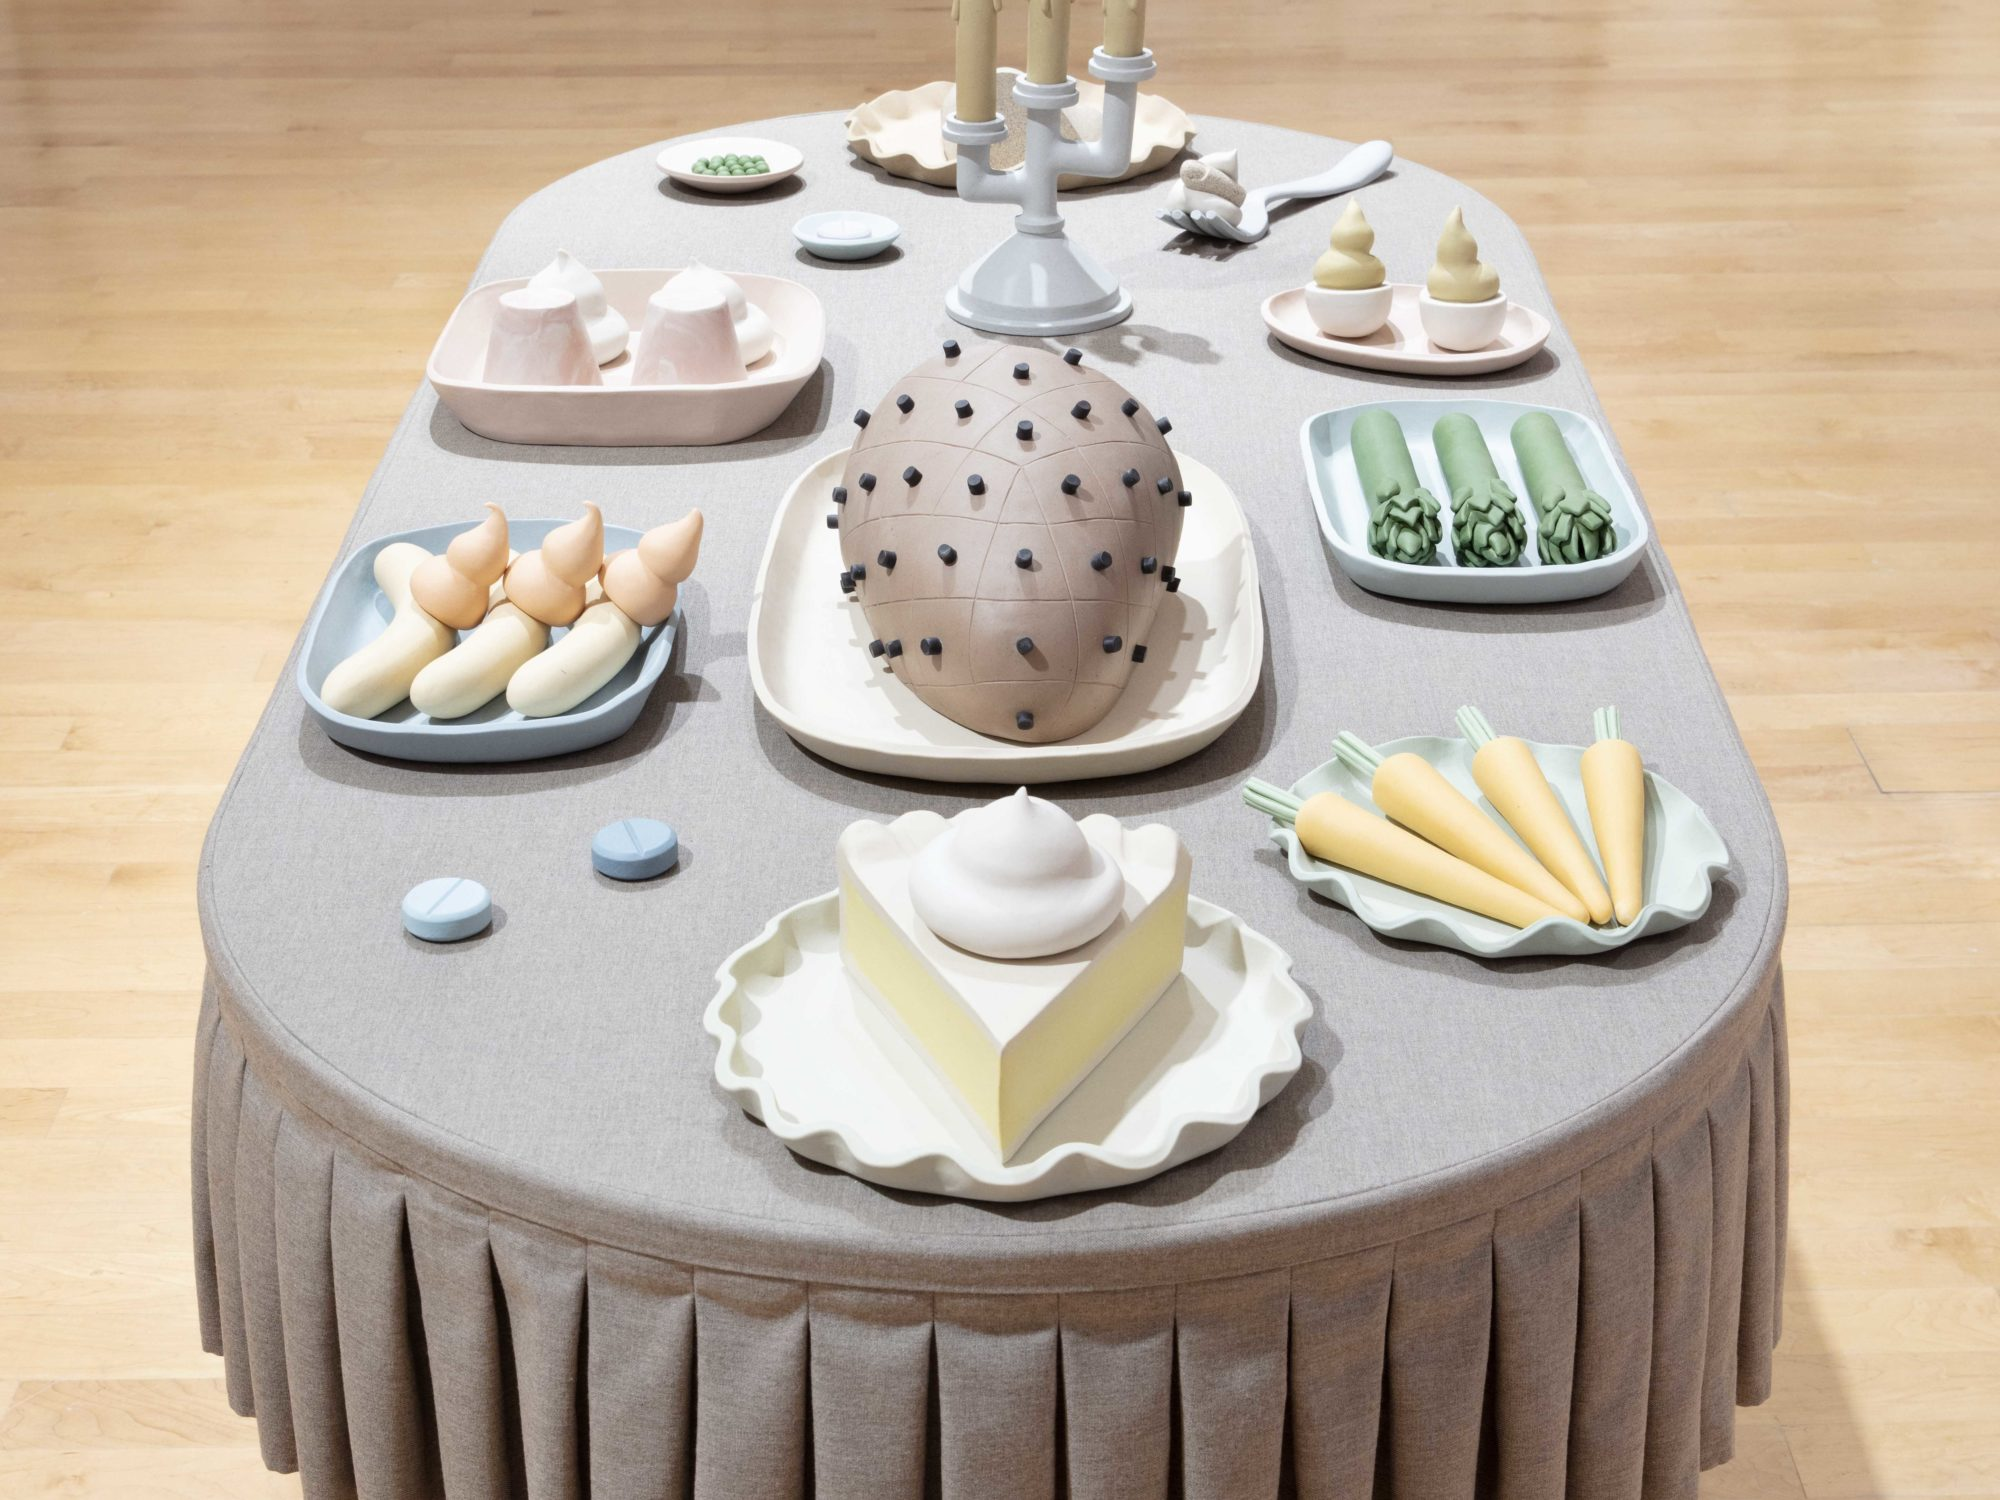 Side view of a oblong table with a gray pleated tablecloth, with clay sculptures of food items such as a ham, slice of pie, deviled eggs, and asparagus.